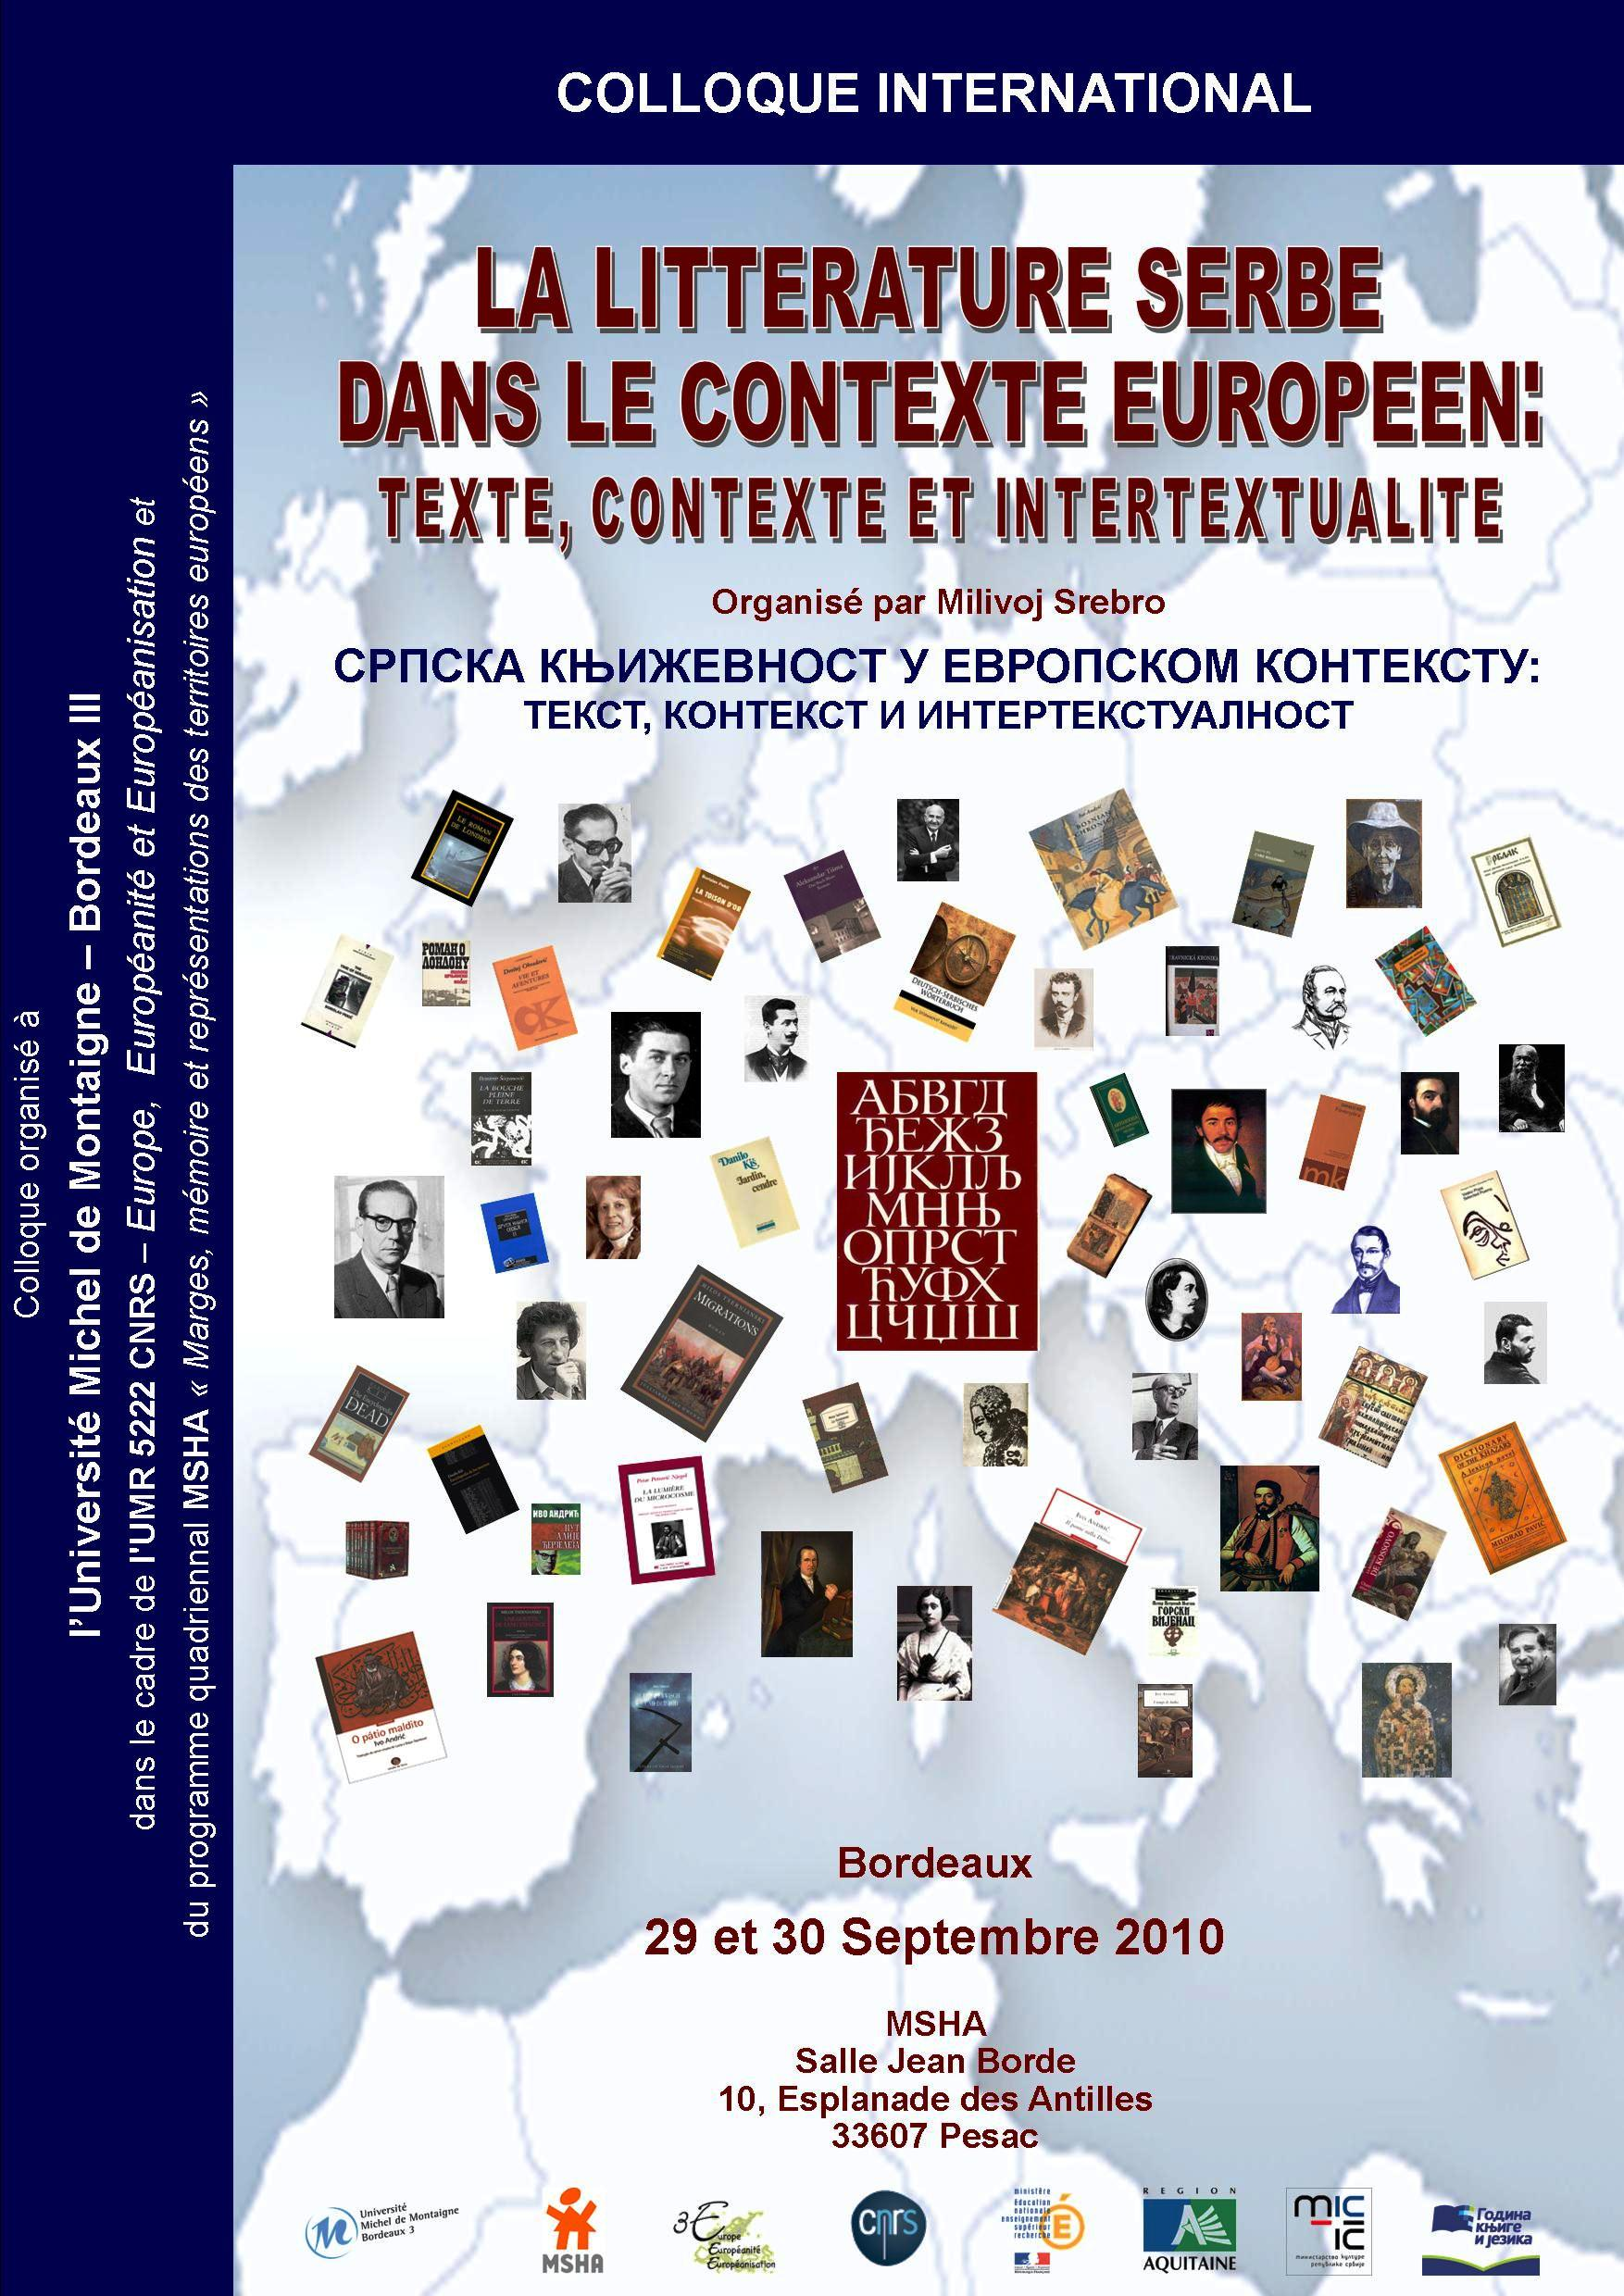 Colloque_-_affiche